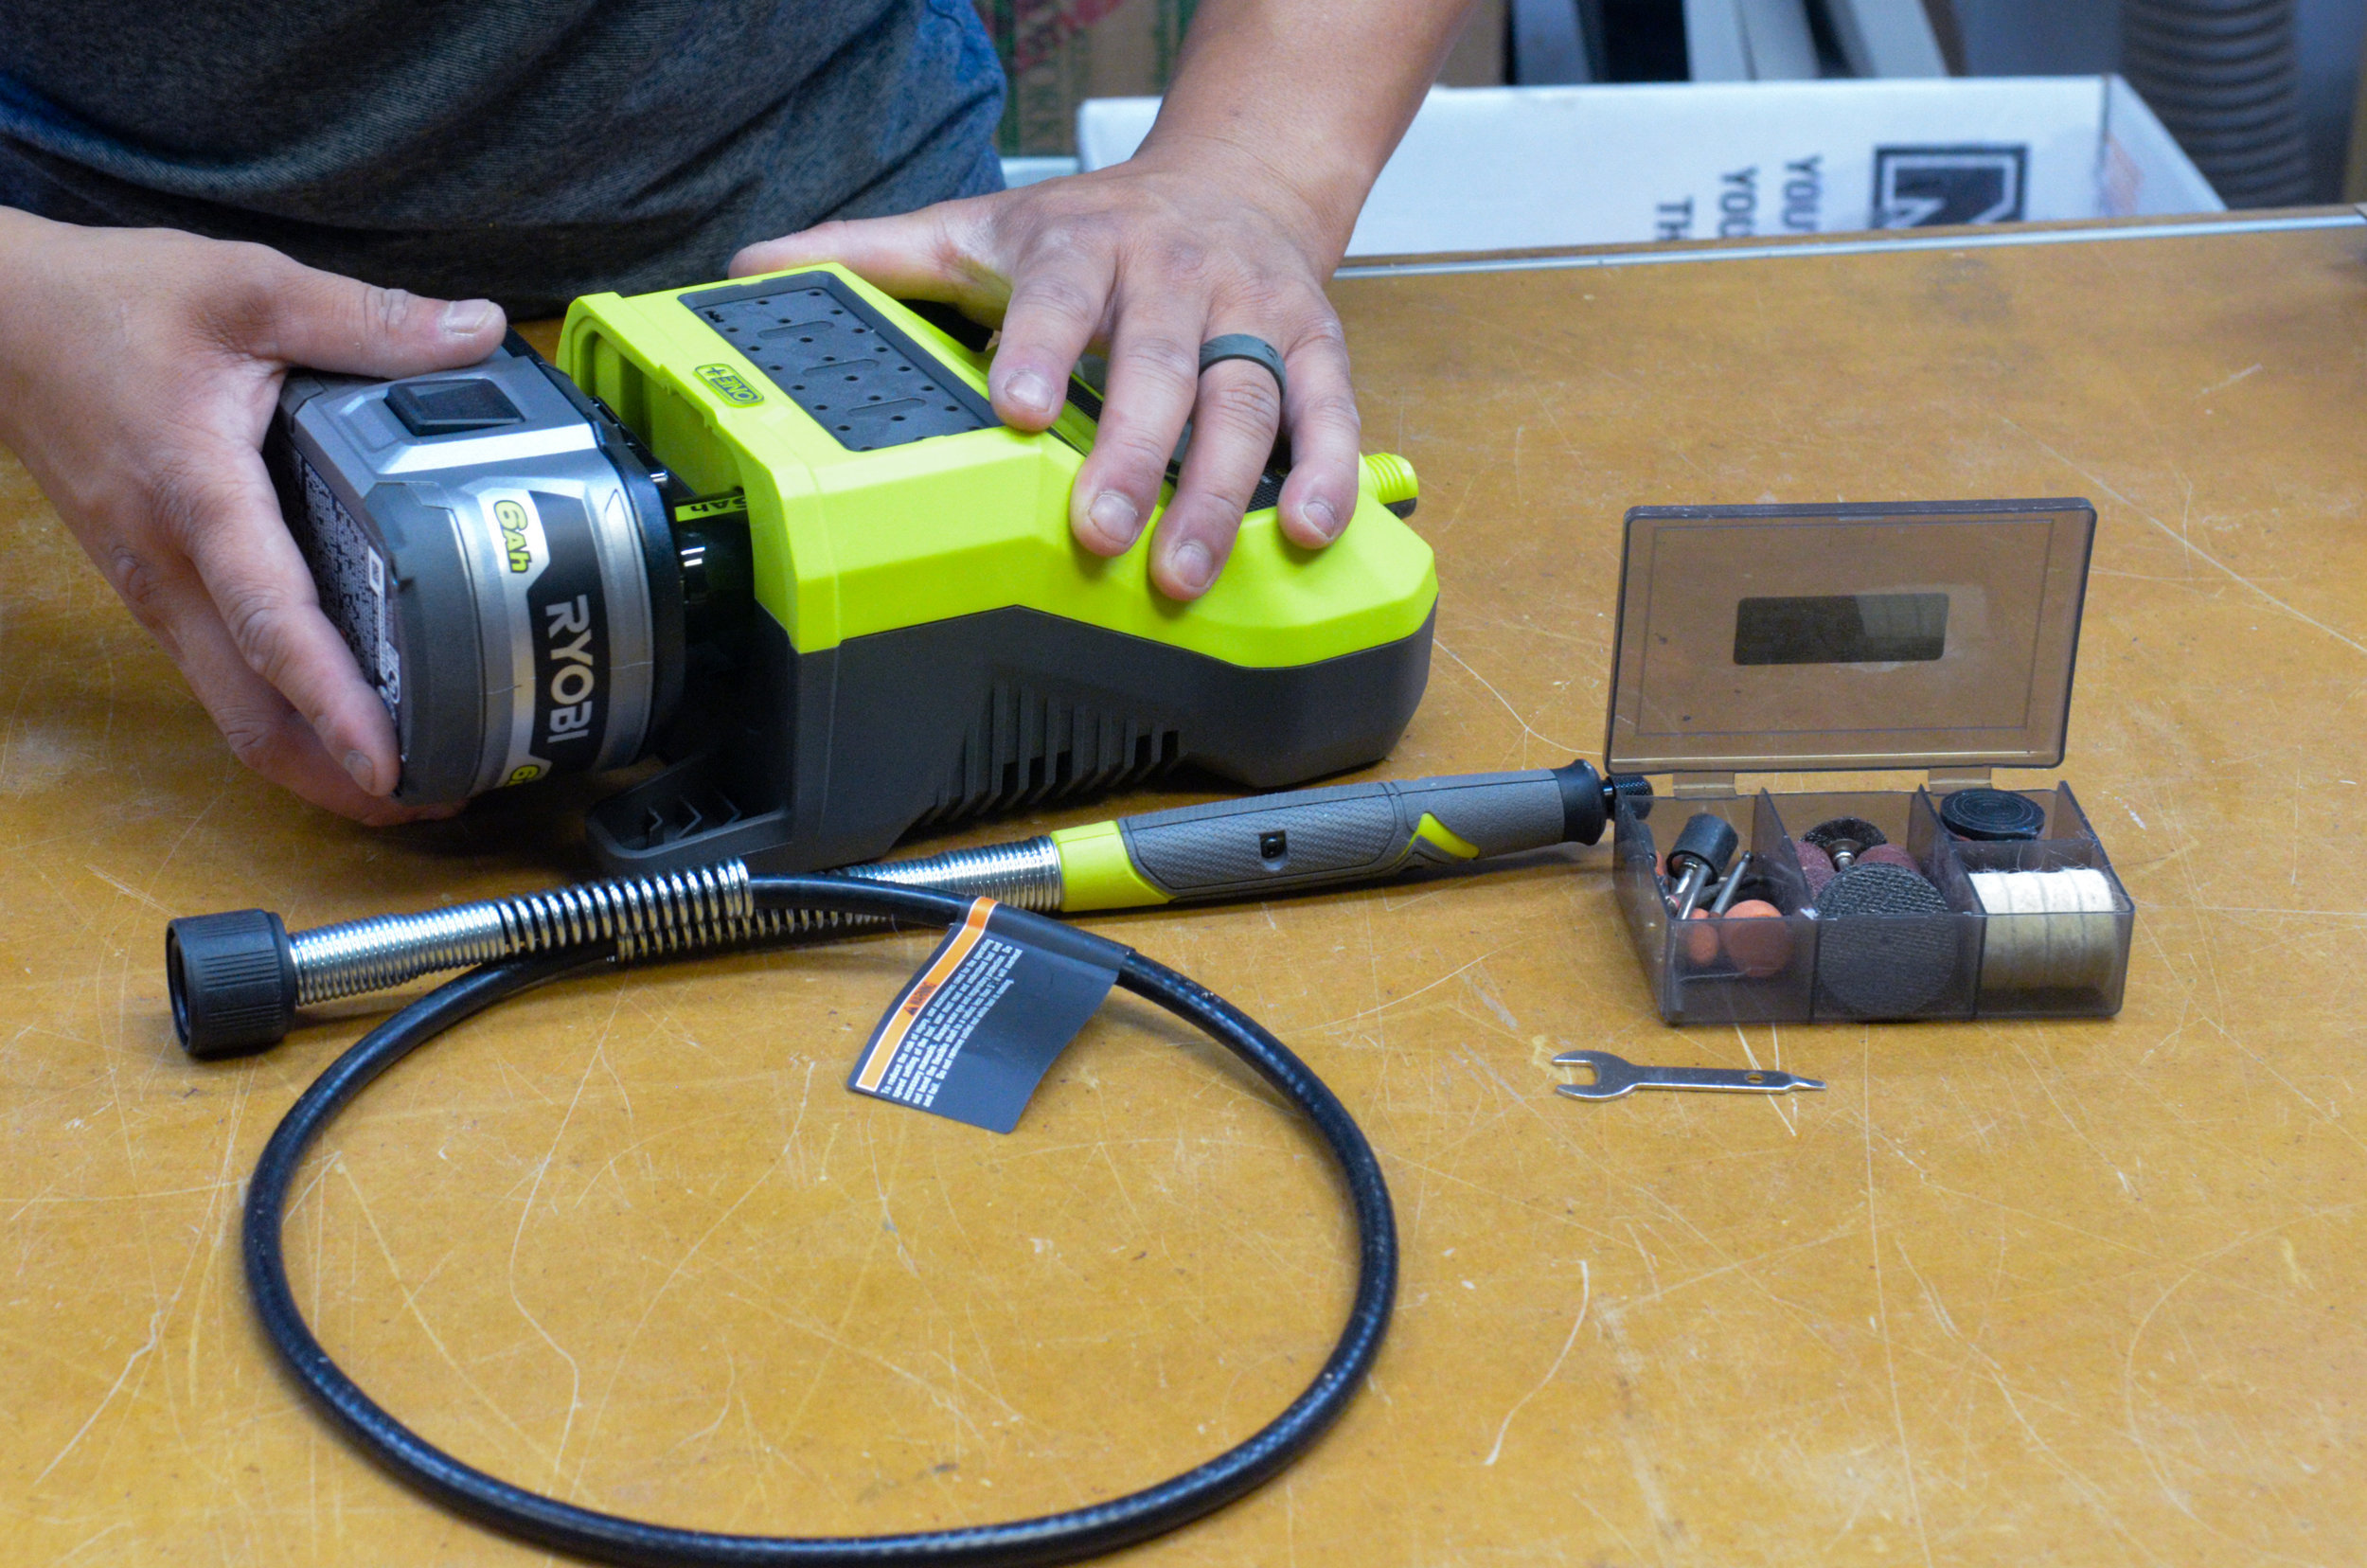 A flexible shaft rotary tool by Ryobi could have made shaping the interior cloud lift much simpler.